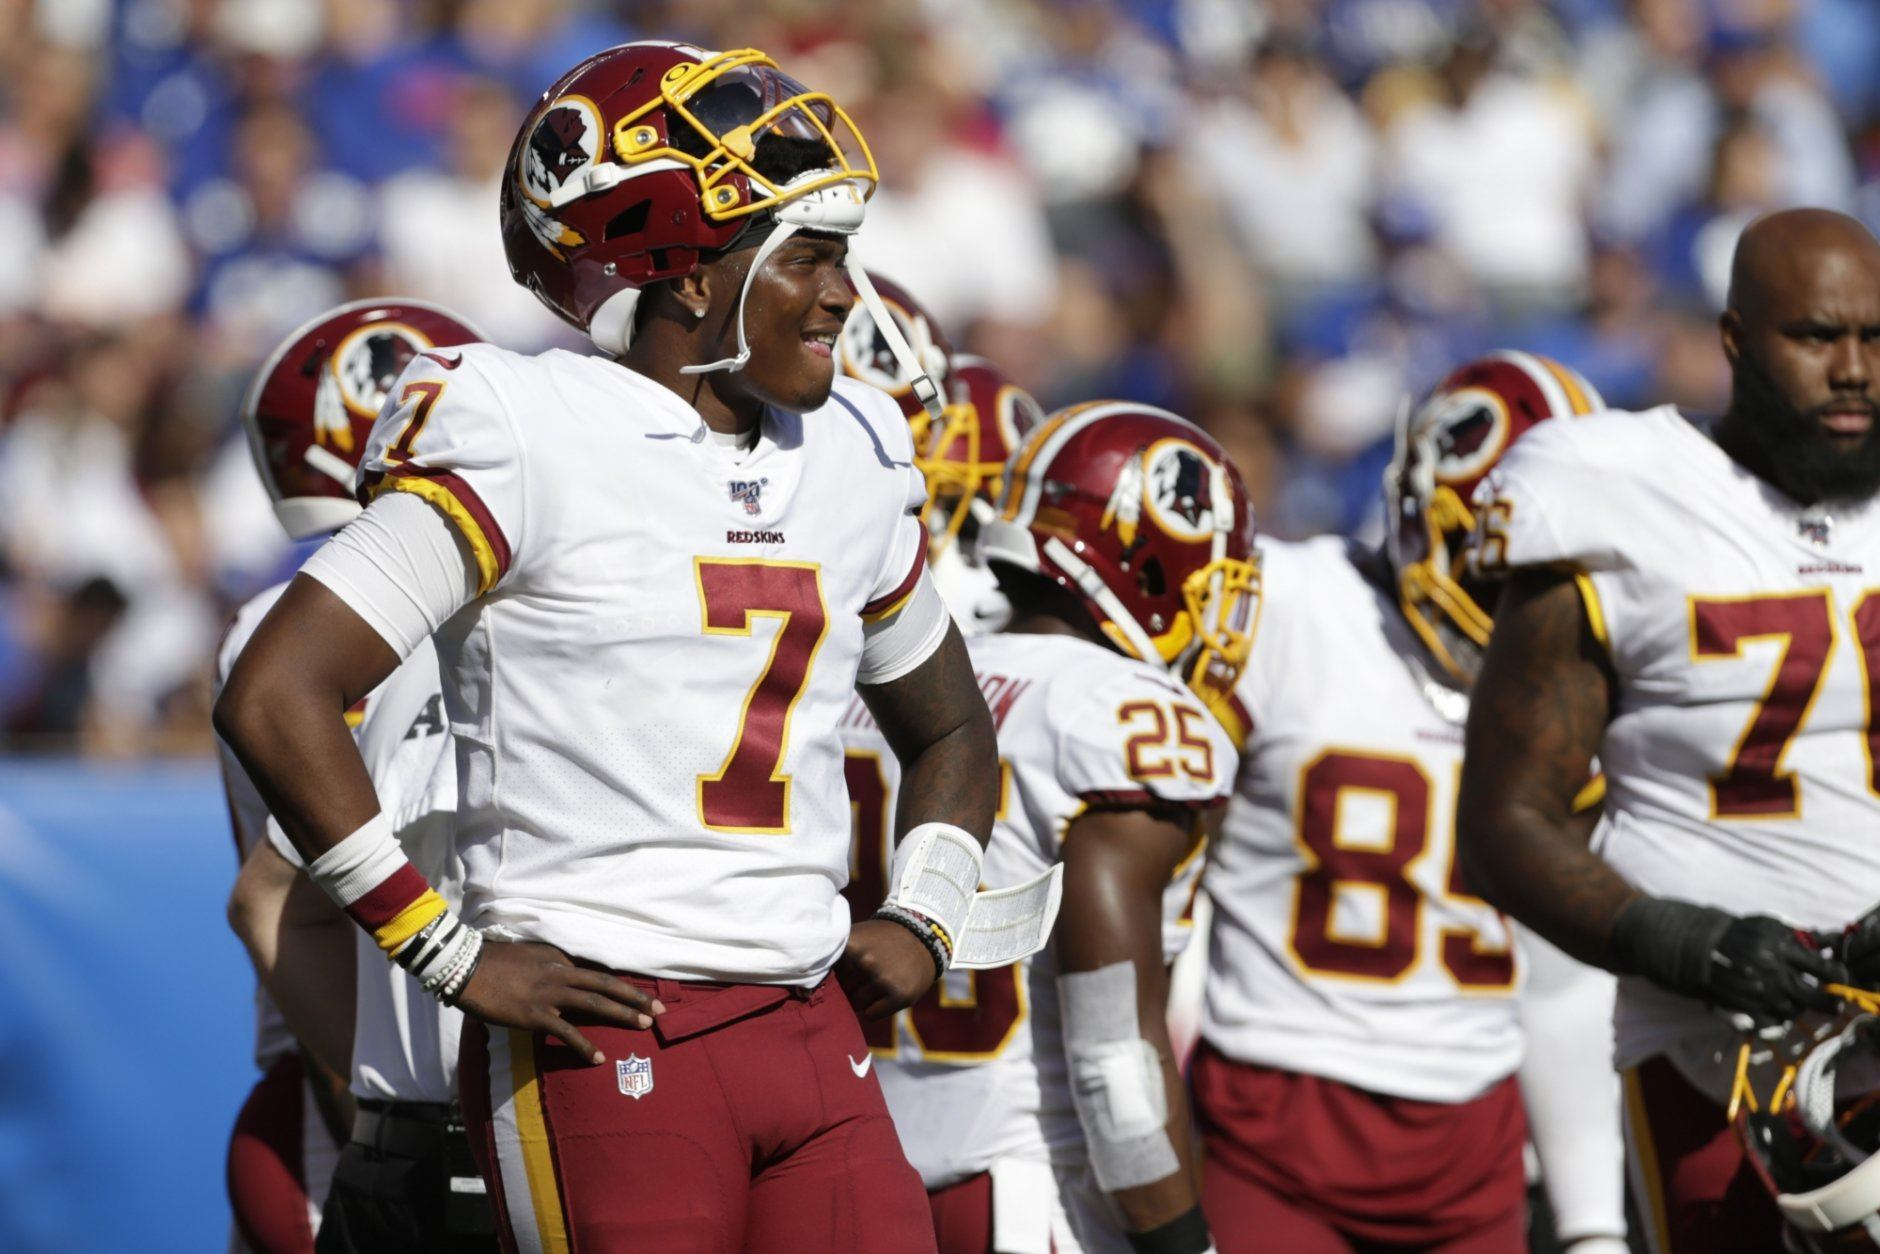 Washington Redskins quarterback Dwayne Haskins watches a play on the field during the second half of an NFL football game against the New York Giants, Sunday, Sept. 29, 2019, in East Rutherford, N.J. (AP Photo/Adam Hunger)